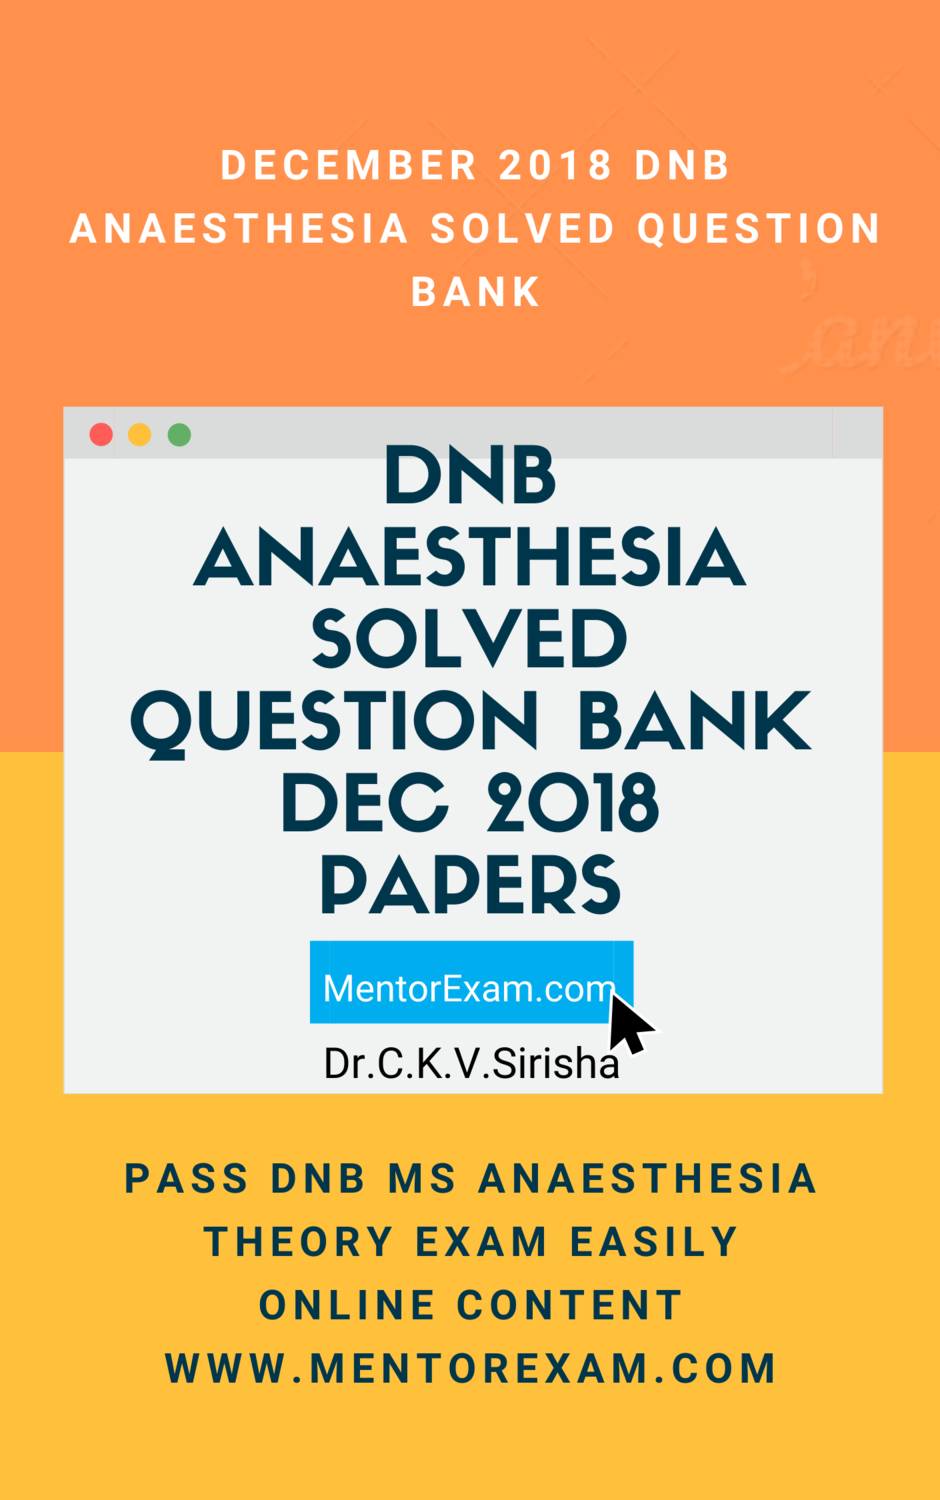 Dec 2018 DNB ANAESTHESIA Solved Question Bank online